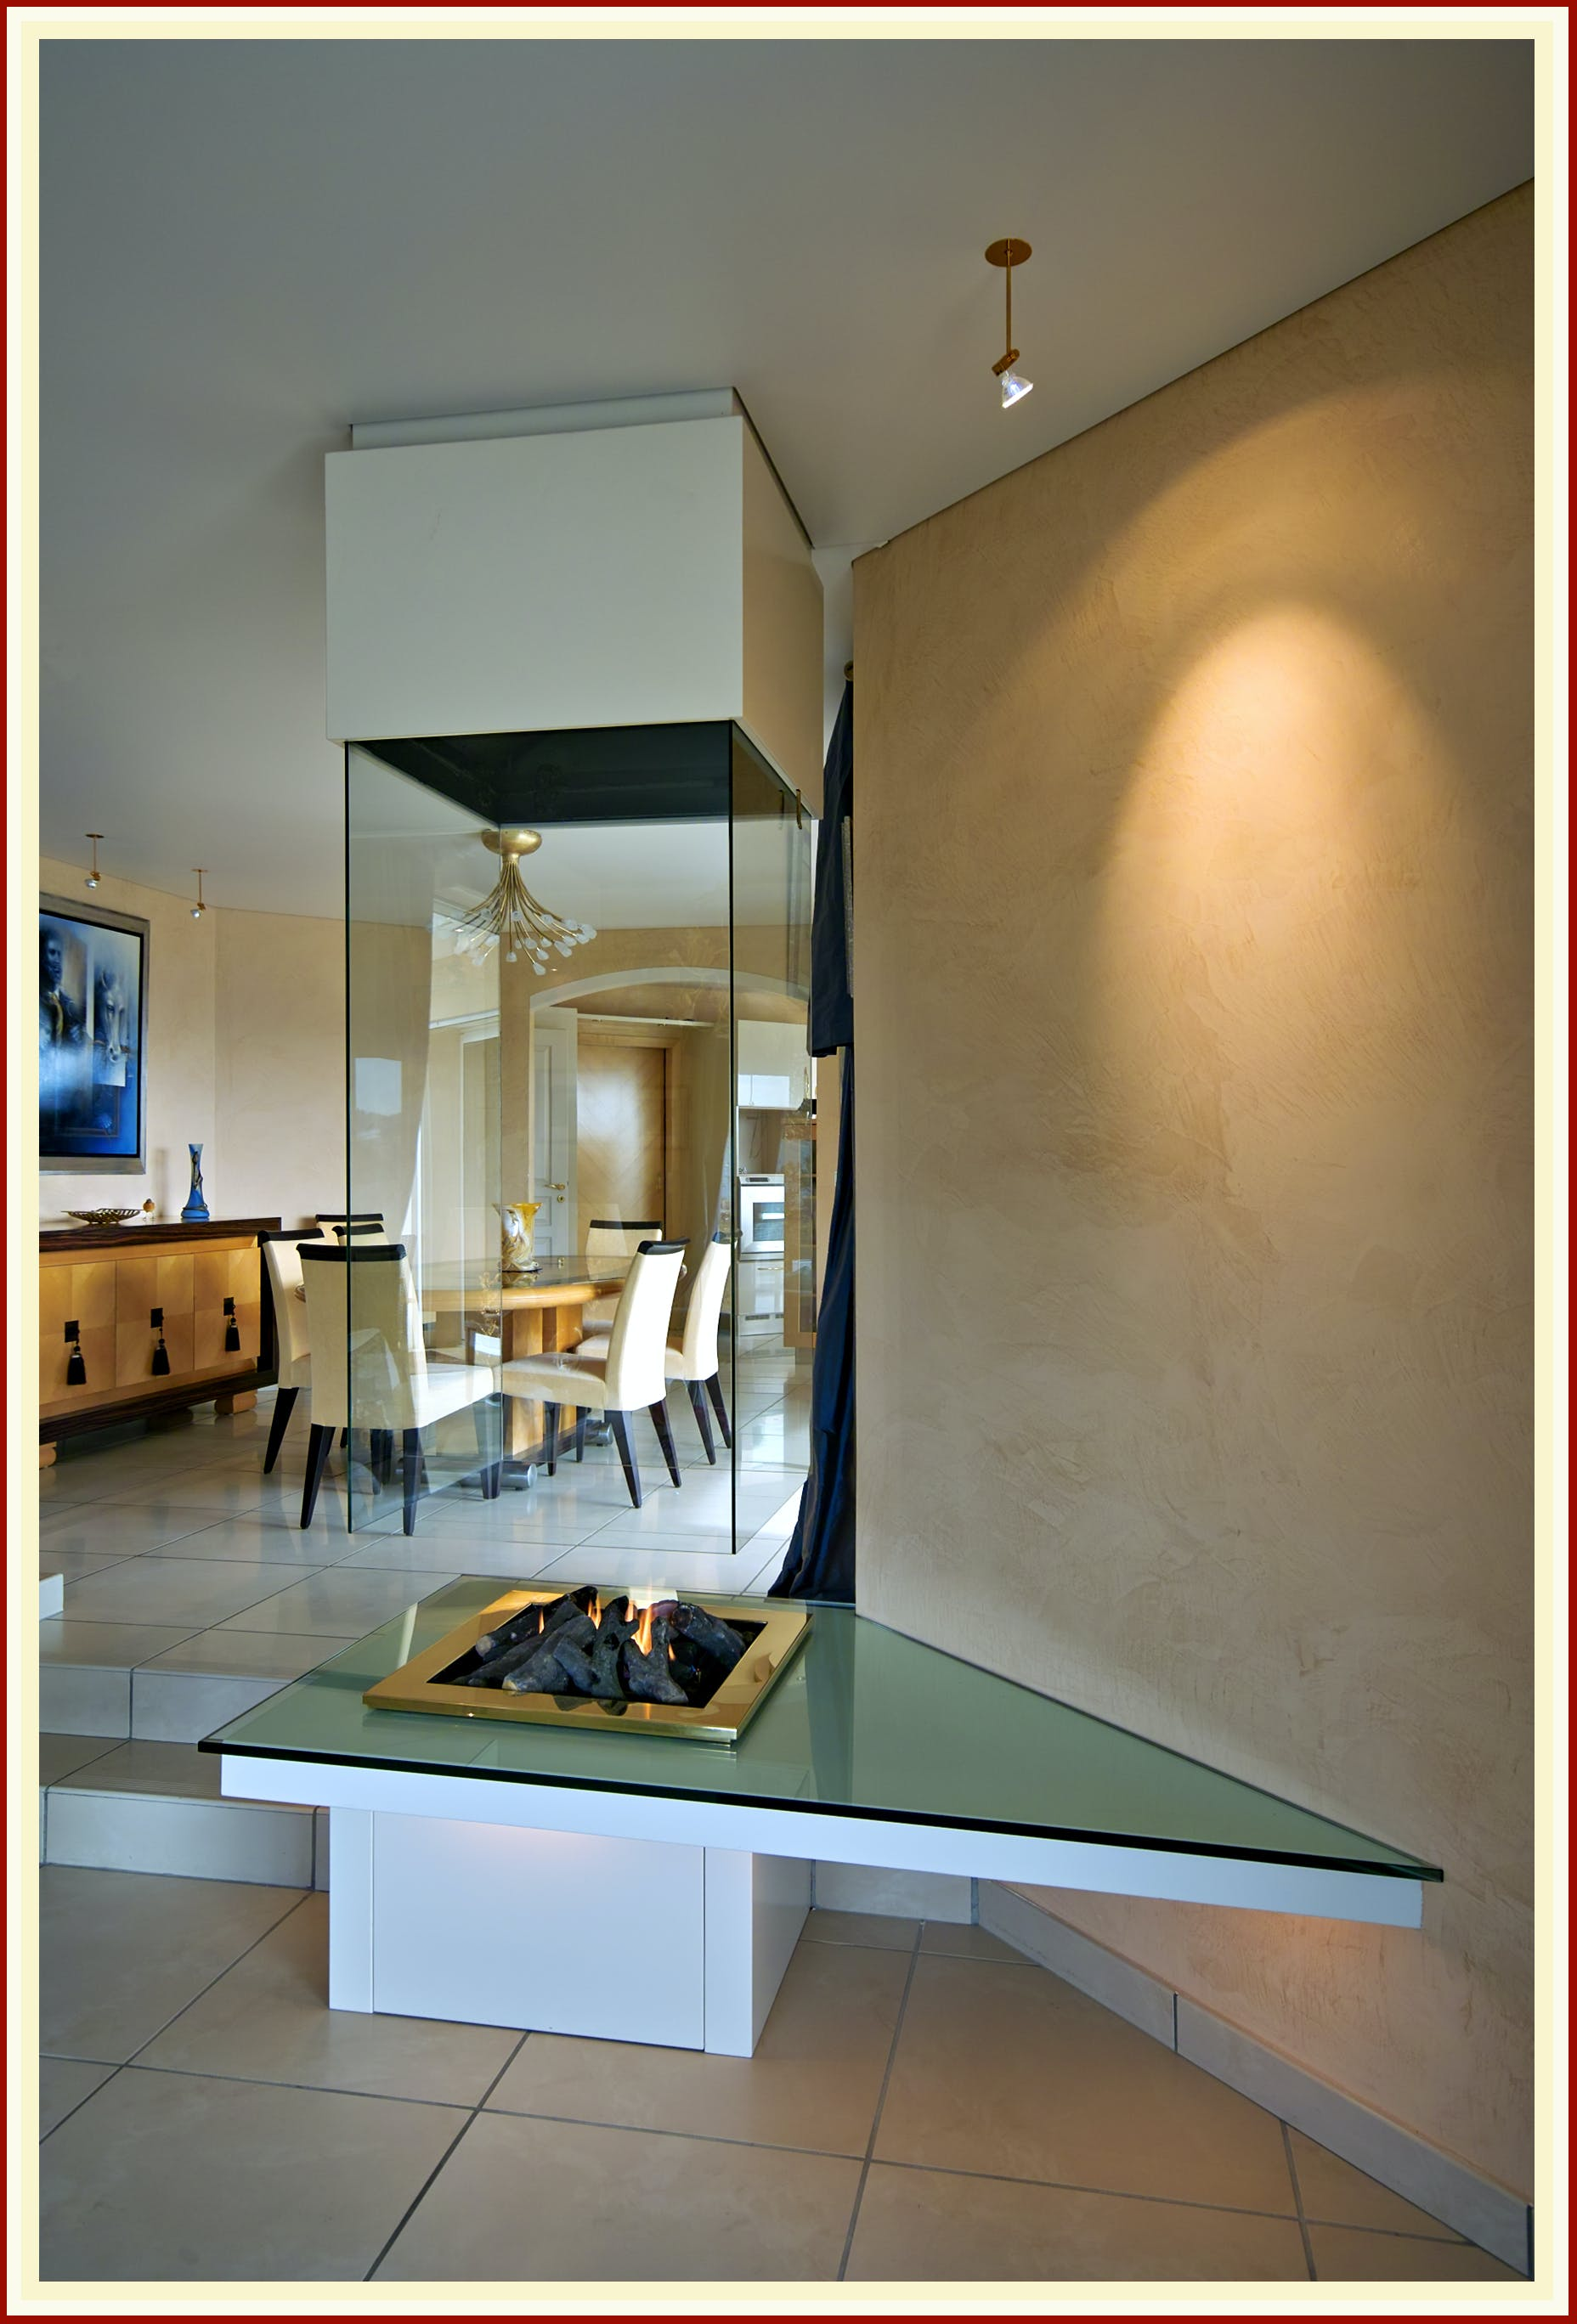 Free Hanging Fireplace / cheminée suspendue | BLOCH DESIGN | Archinect